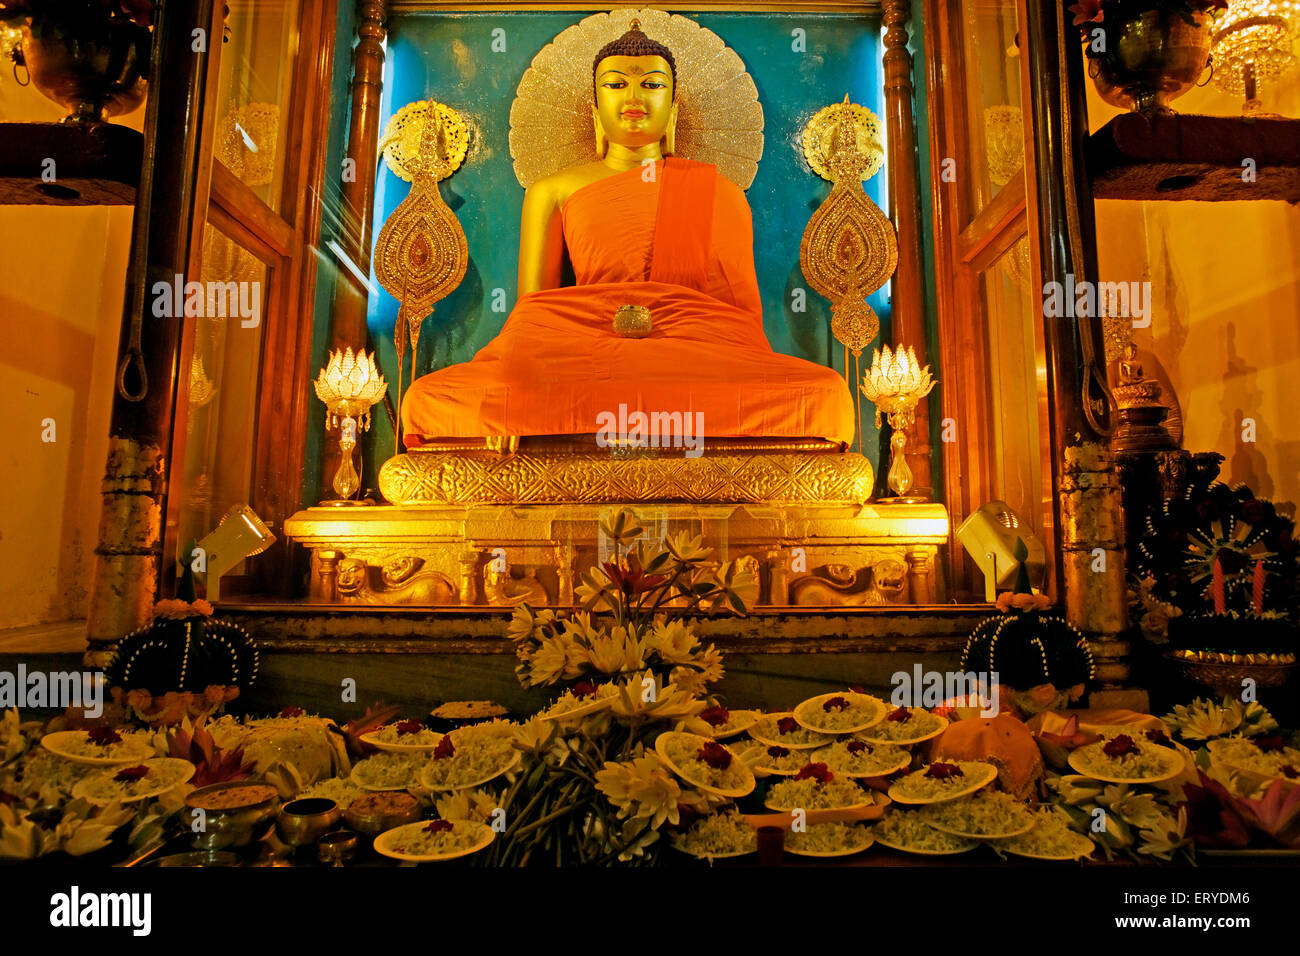 Birth Place Of Buddhism Bihar India: Statue Of Gautam Buddha ; UNESCO World Heritage Mahabodhi